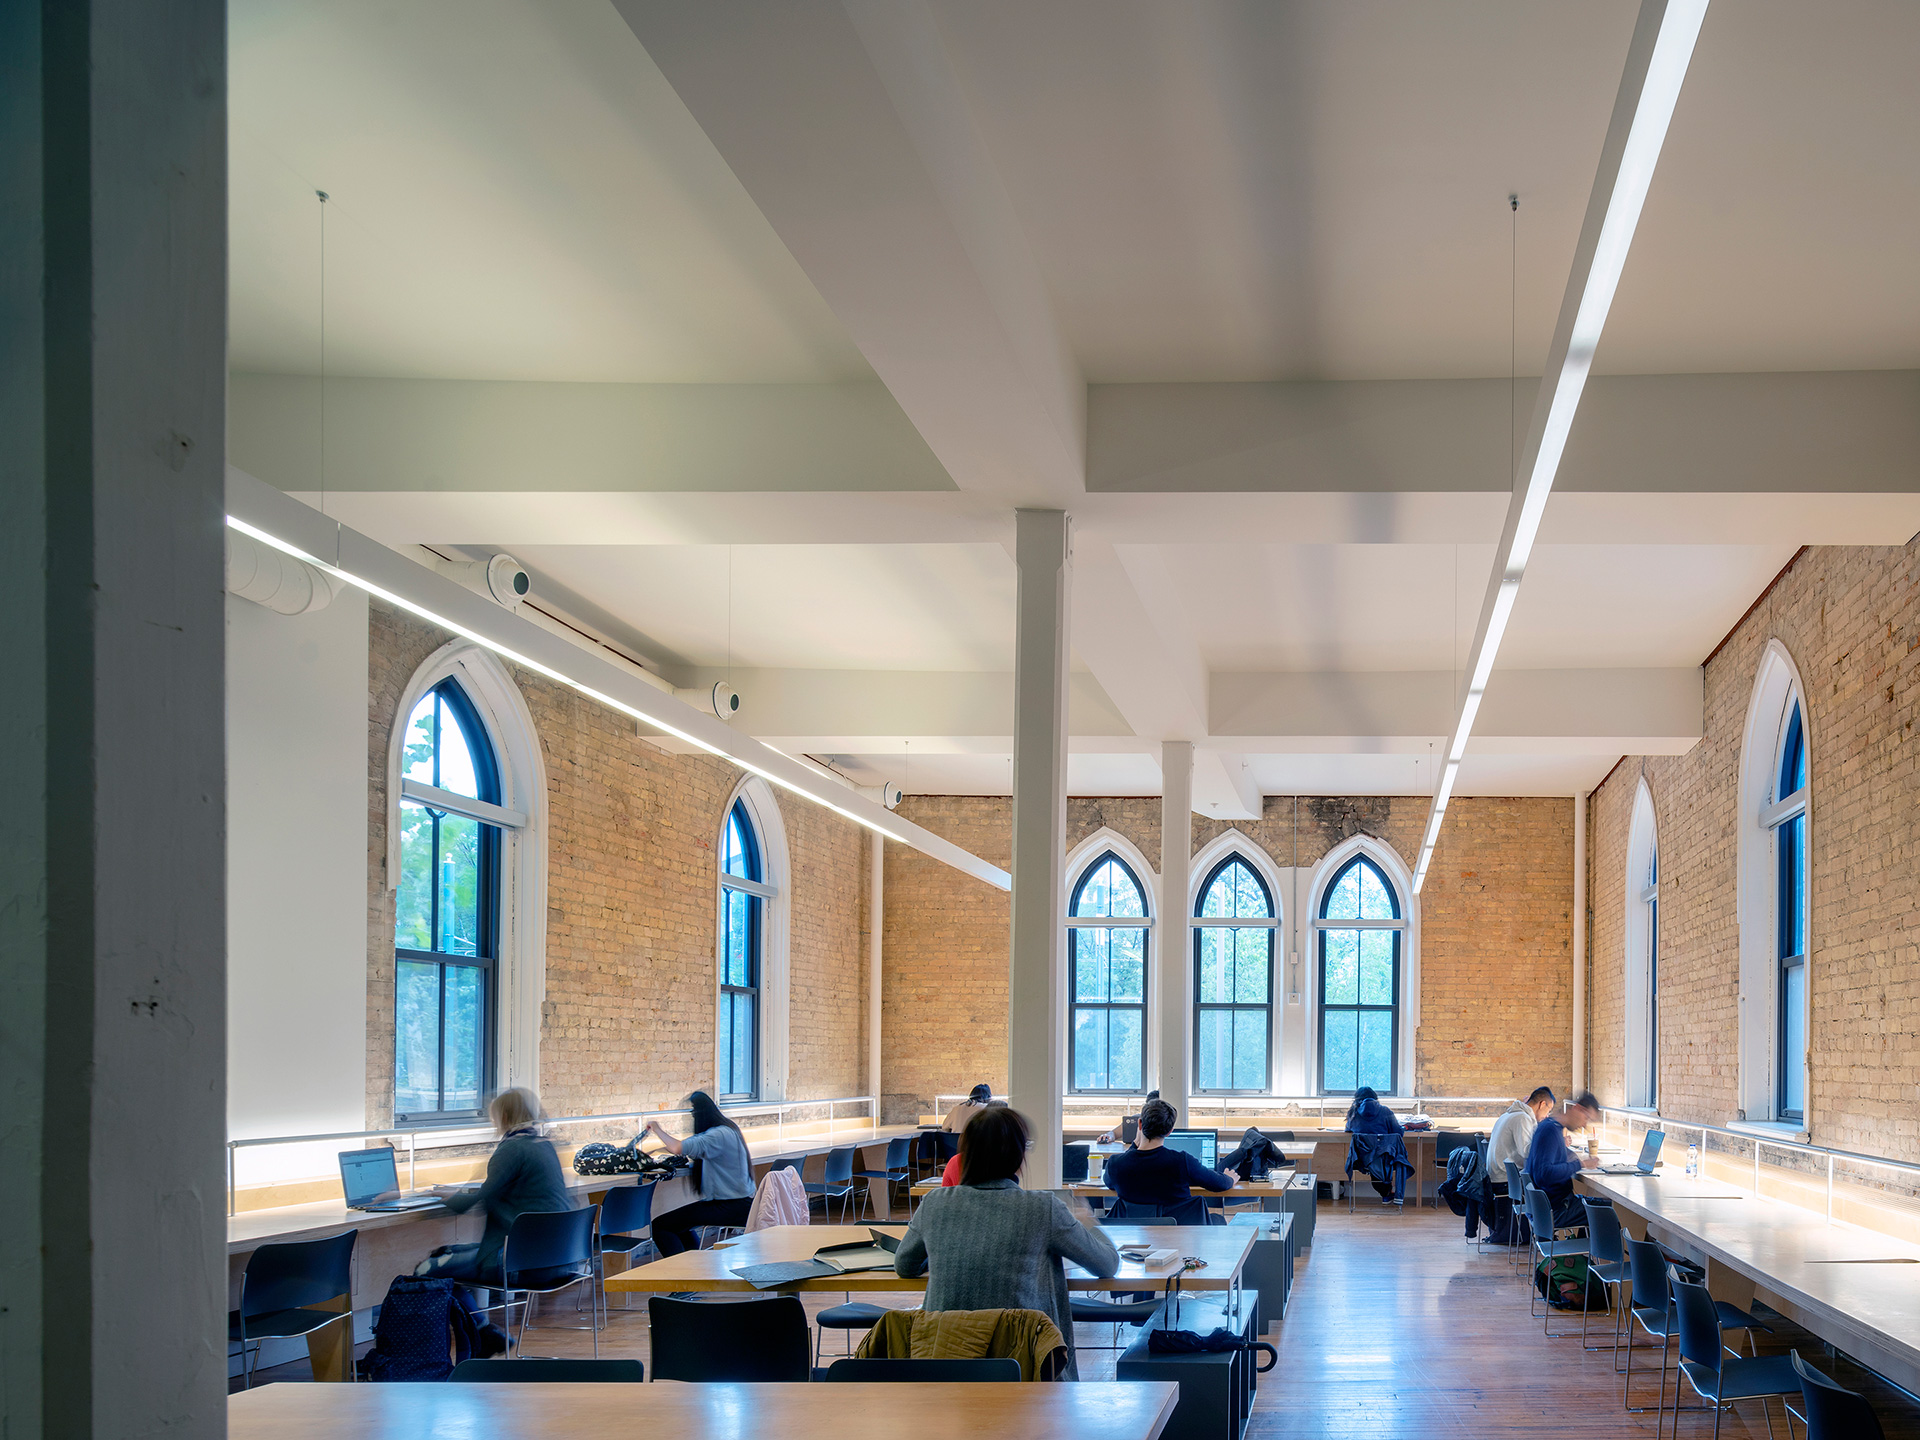 Heritage building with its adaptive re-use | Daniels Faculty of Architecture | NADAAA architects | Canada |STIRworld